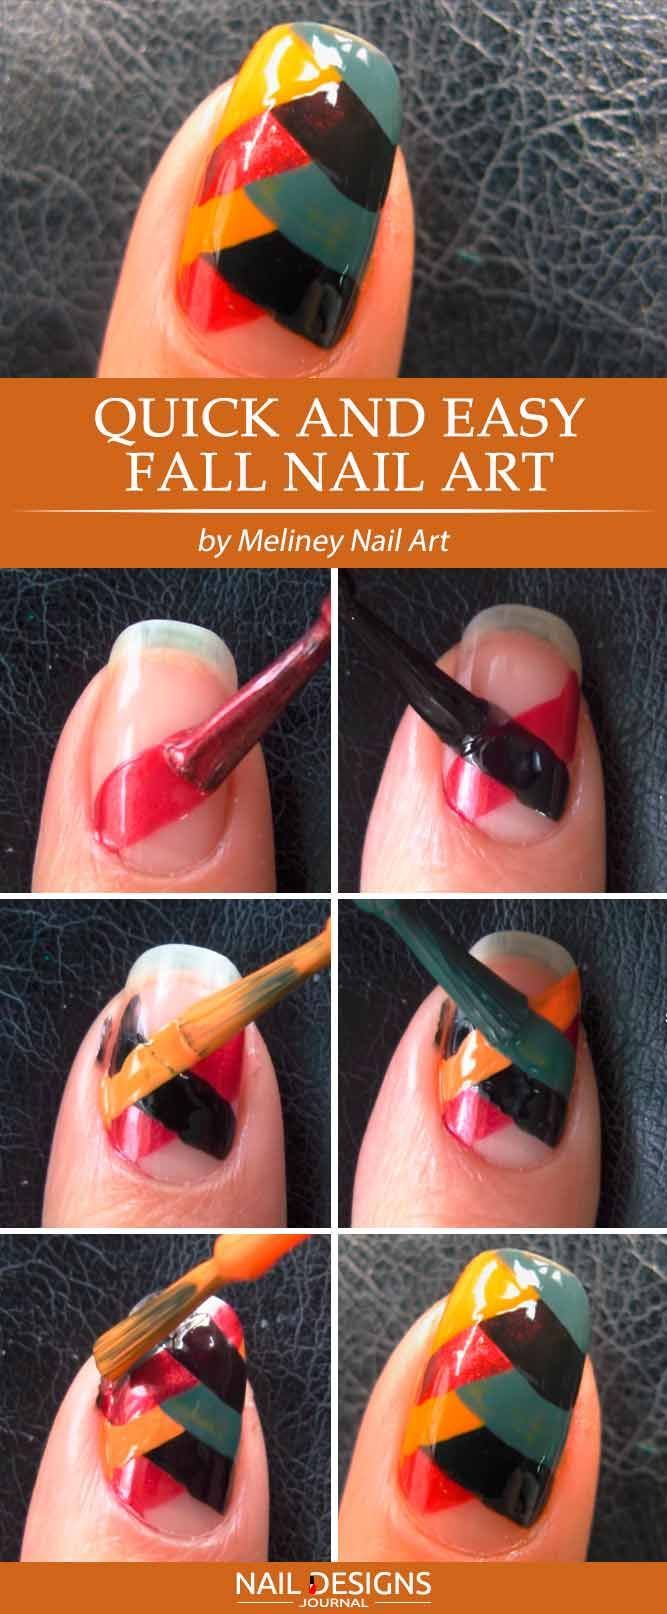 Fall Fishtale Nail Art #fallnailart #simplenaildesigns ❤️ Want some easy nai…